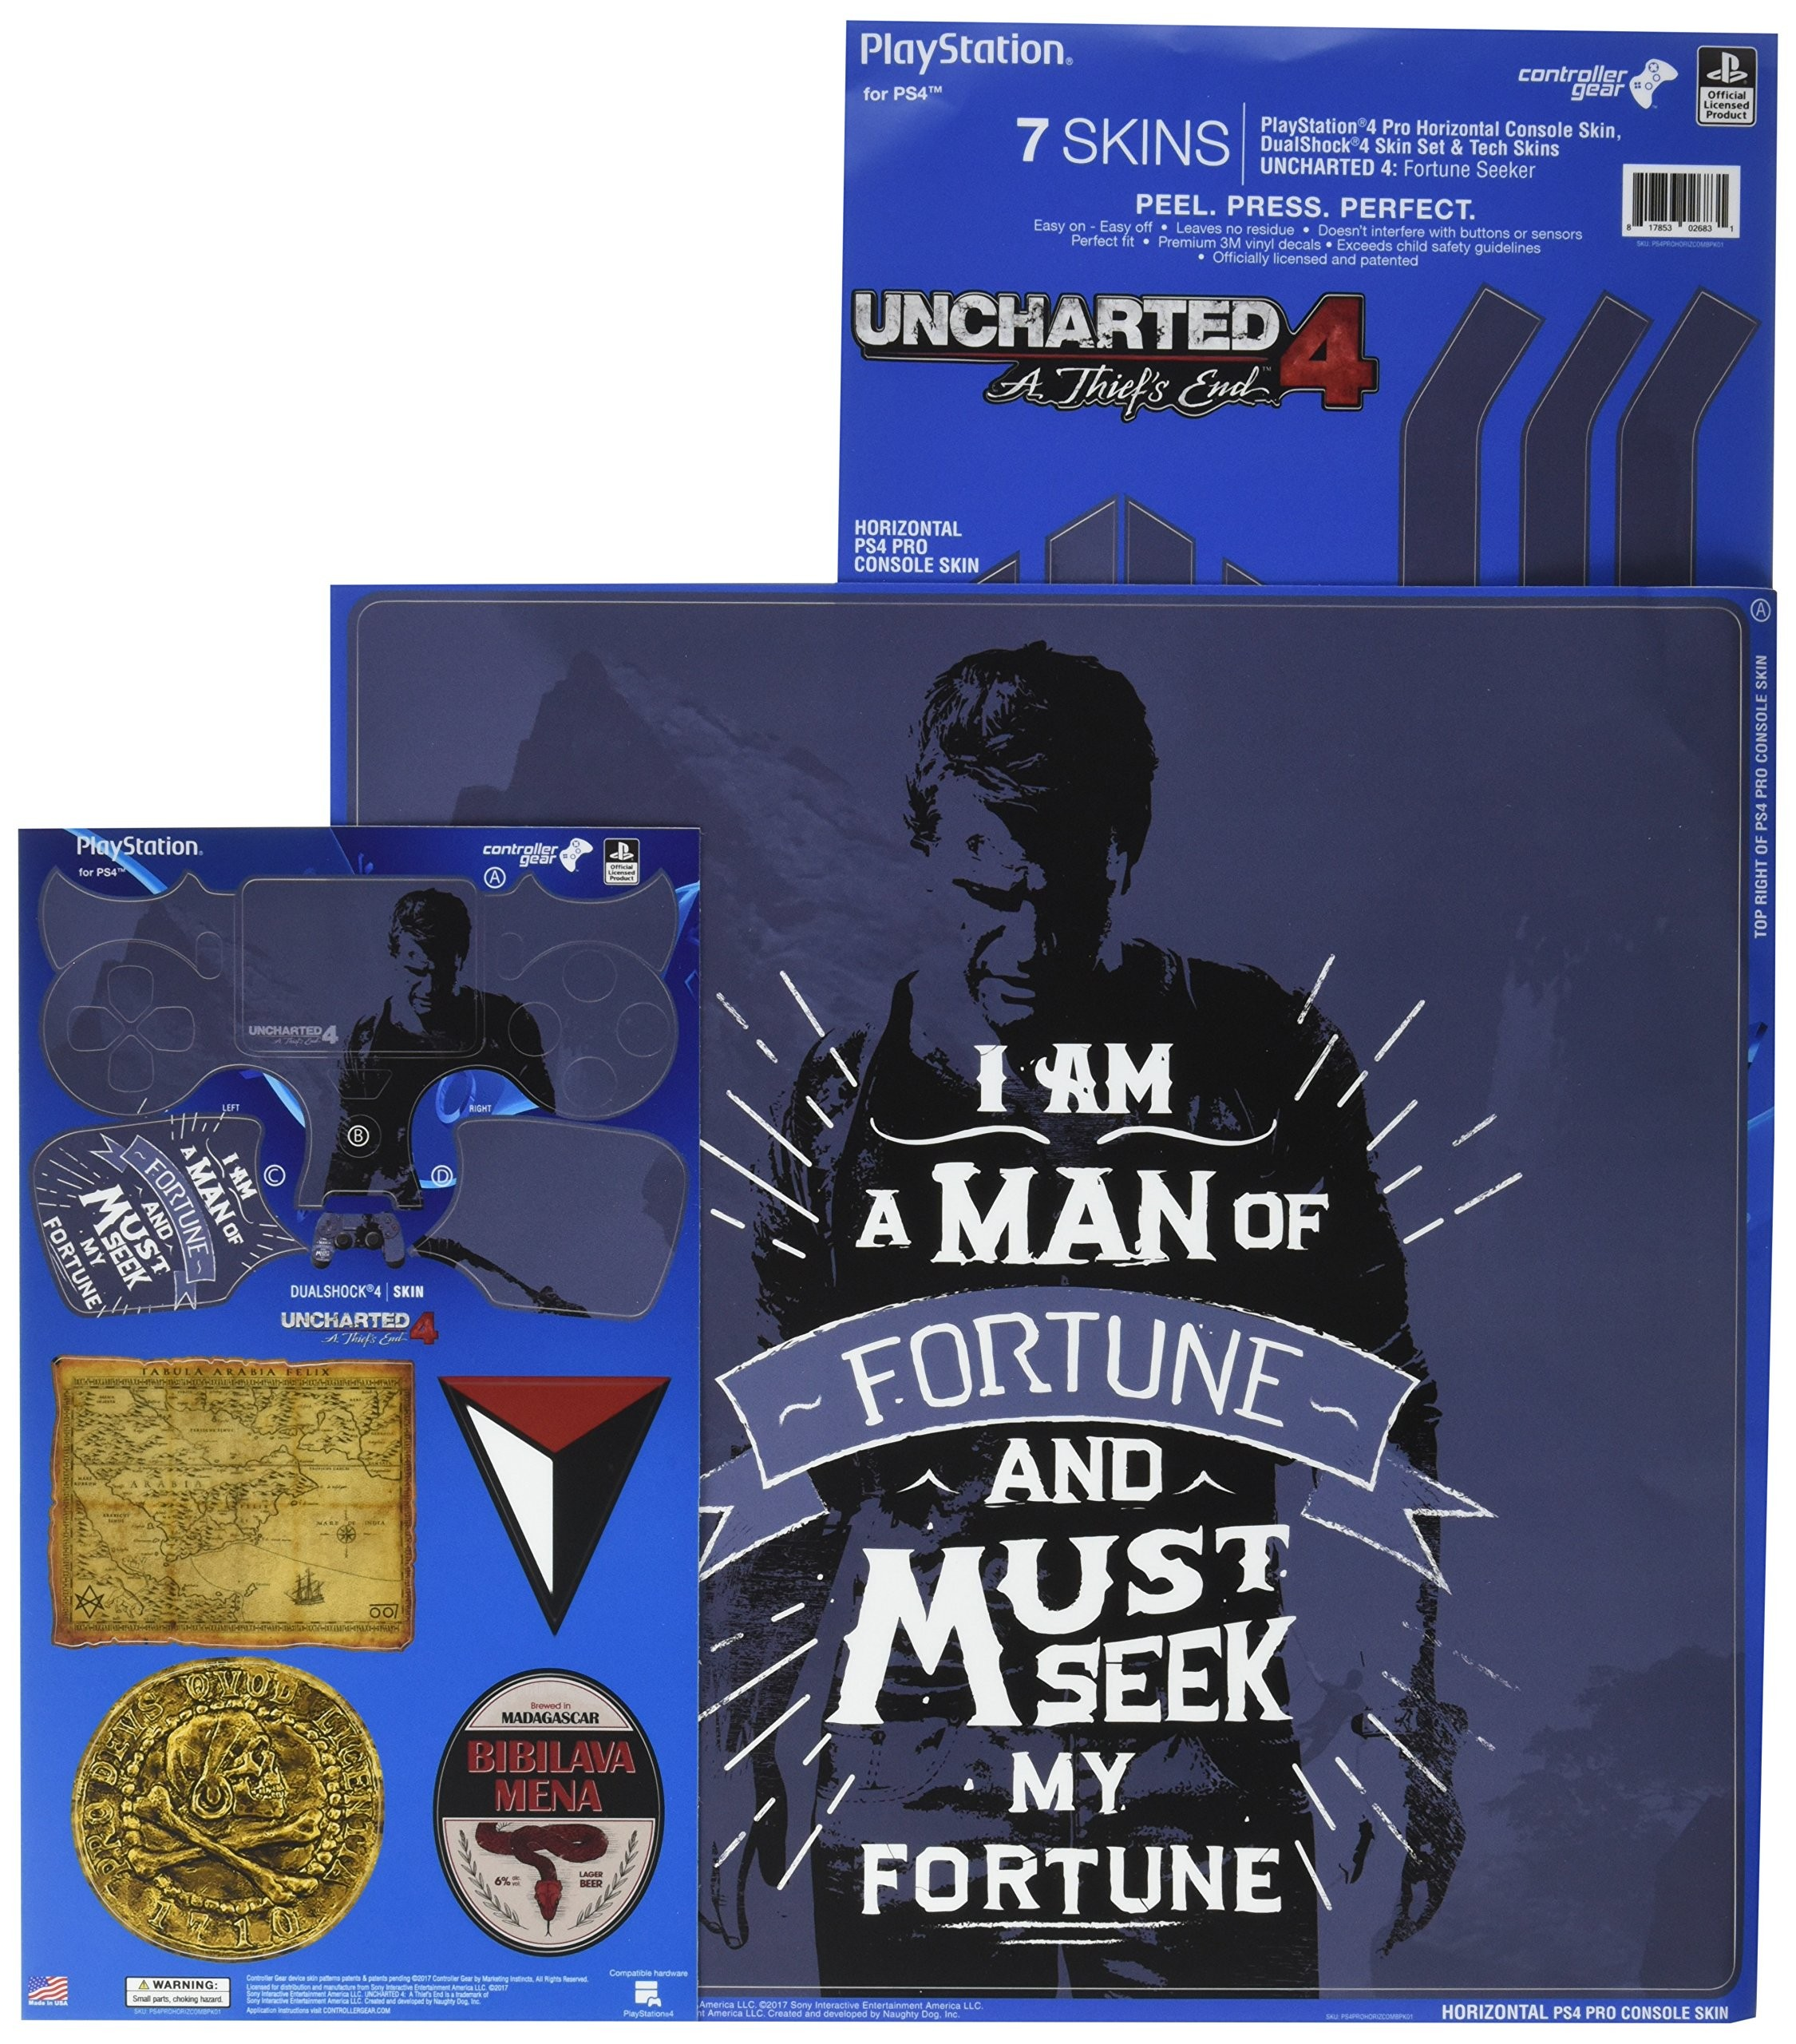 Uncharted 4 Fortune Seeker - PS4 PRO Horizontal Console and Controller Gaming Skin Pack - Officially Licensed by PlayStation - Controller Gear